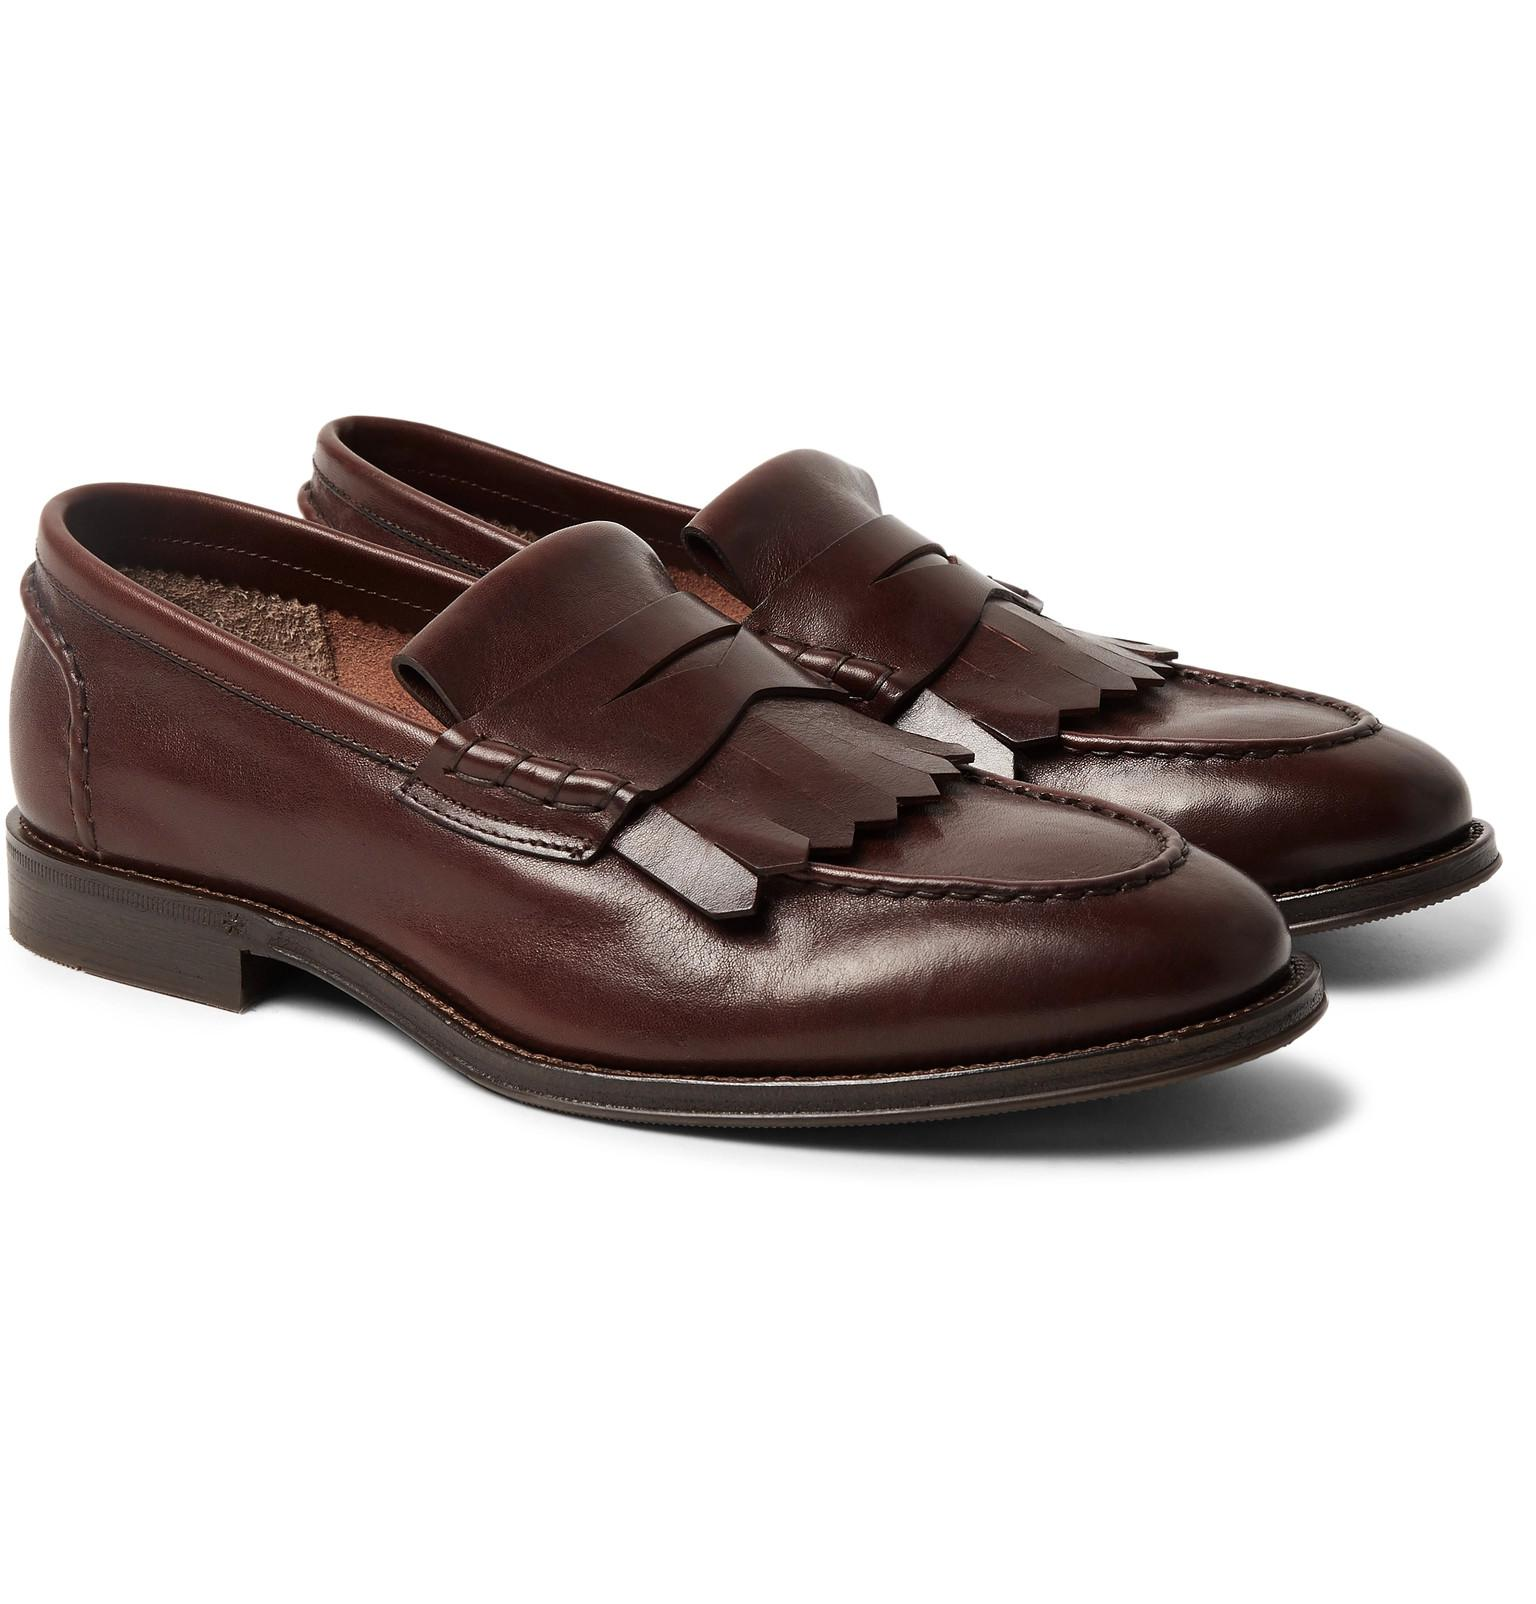 Brunello Cucinelli. Men's Brown Leather Kiltie Loafers